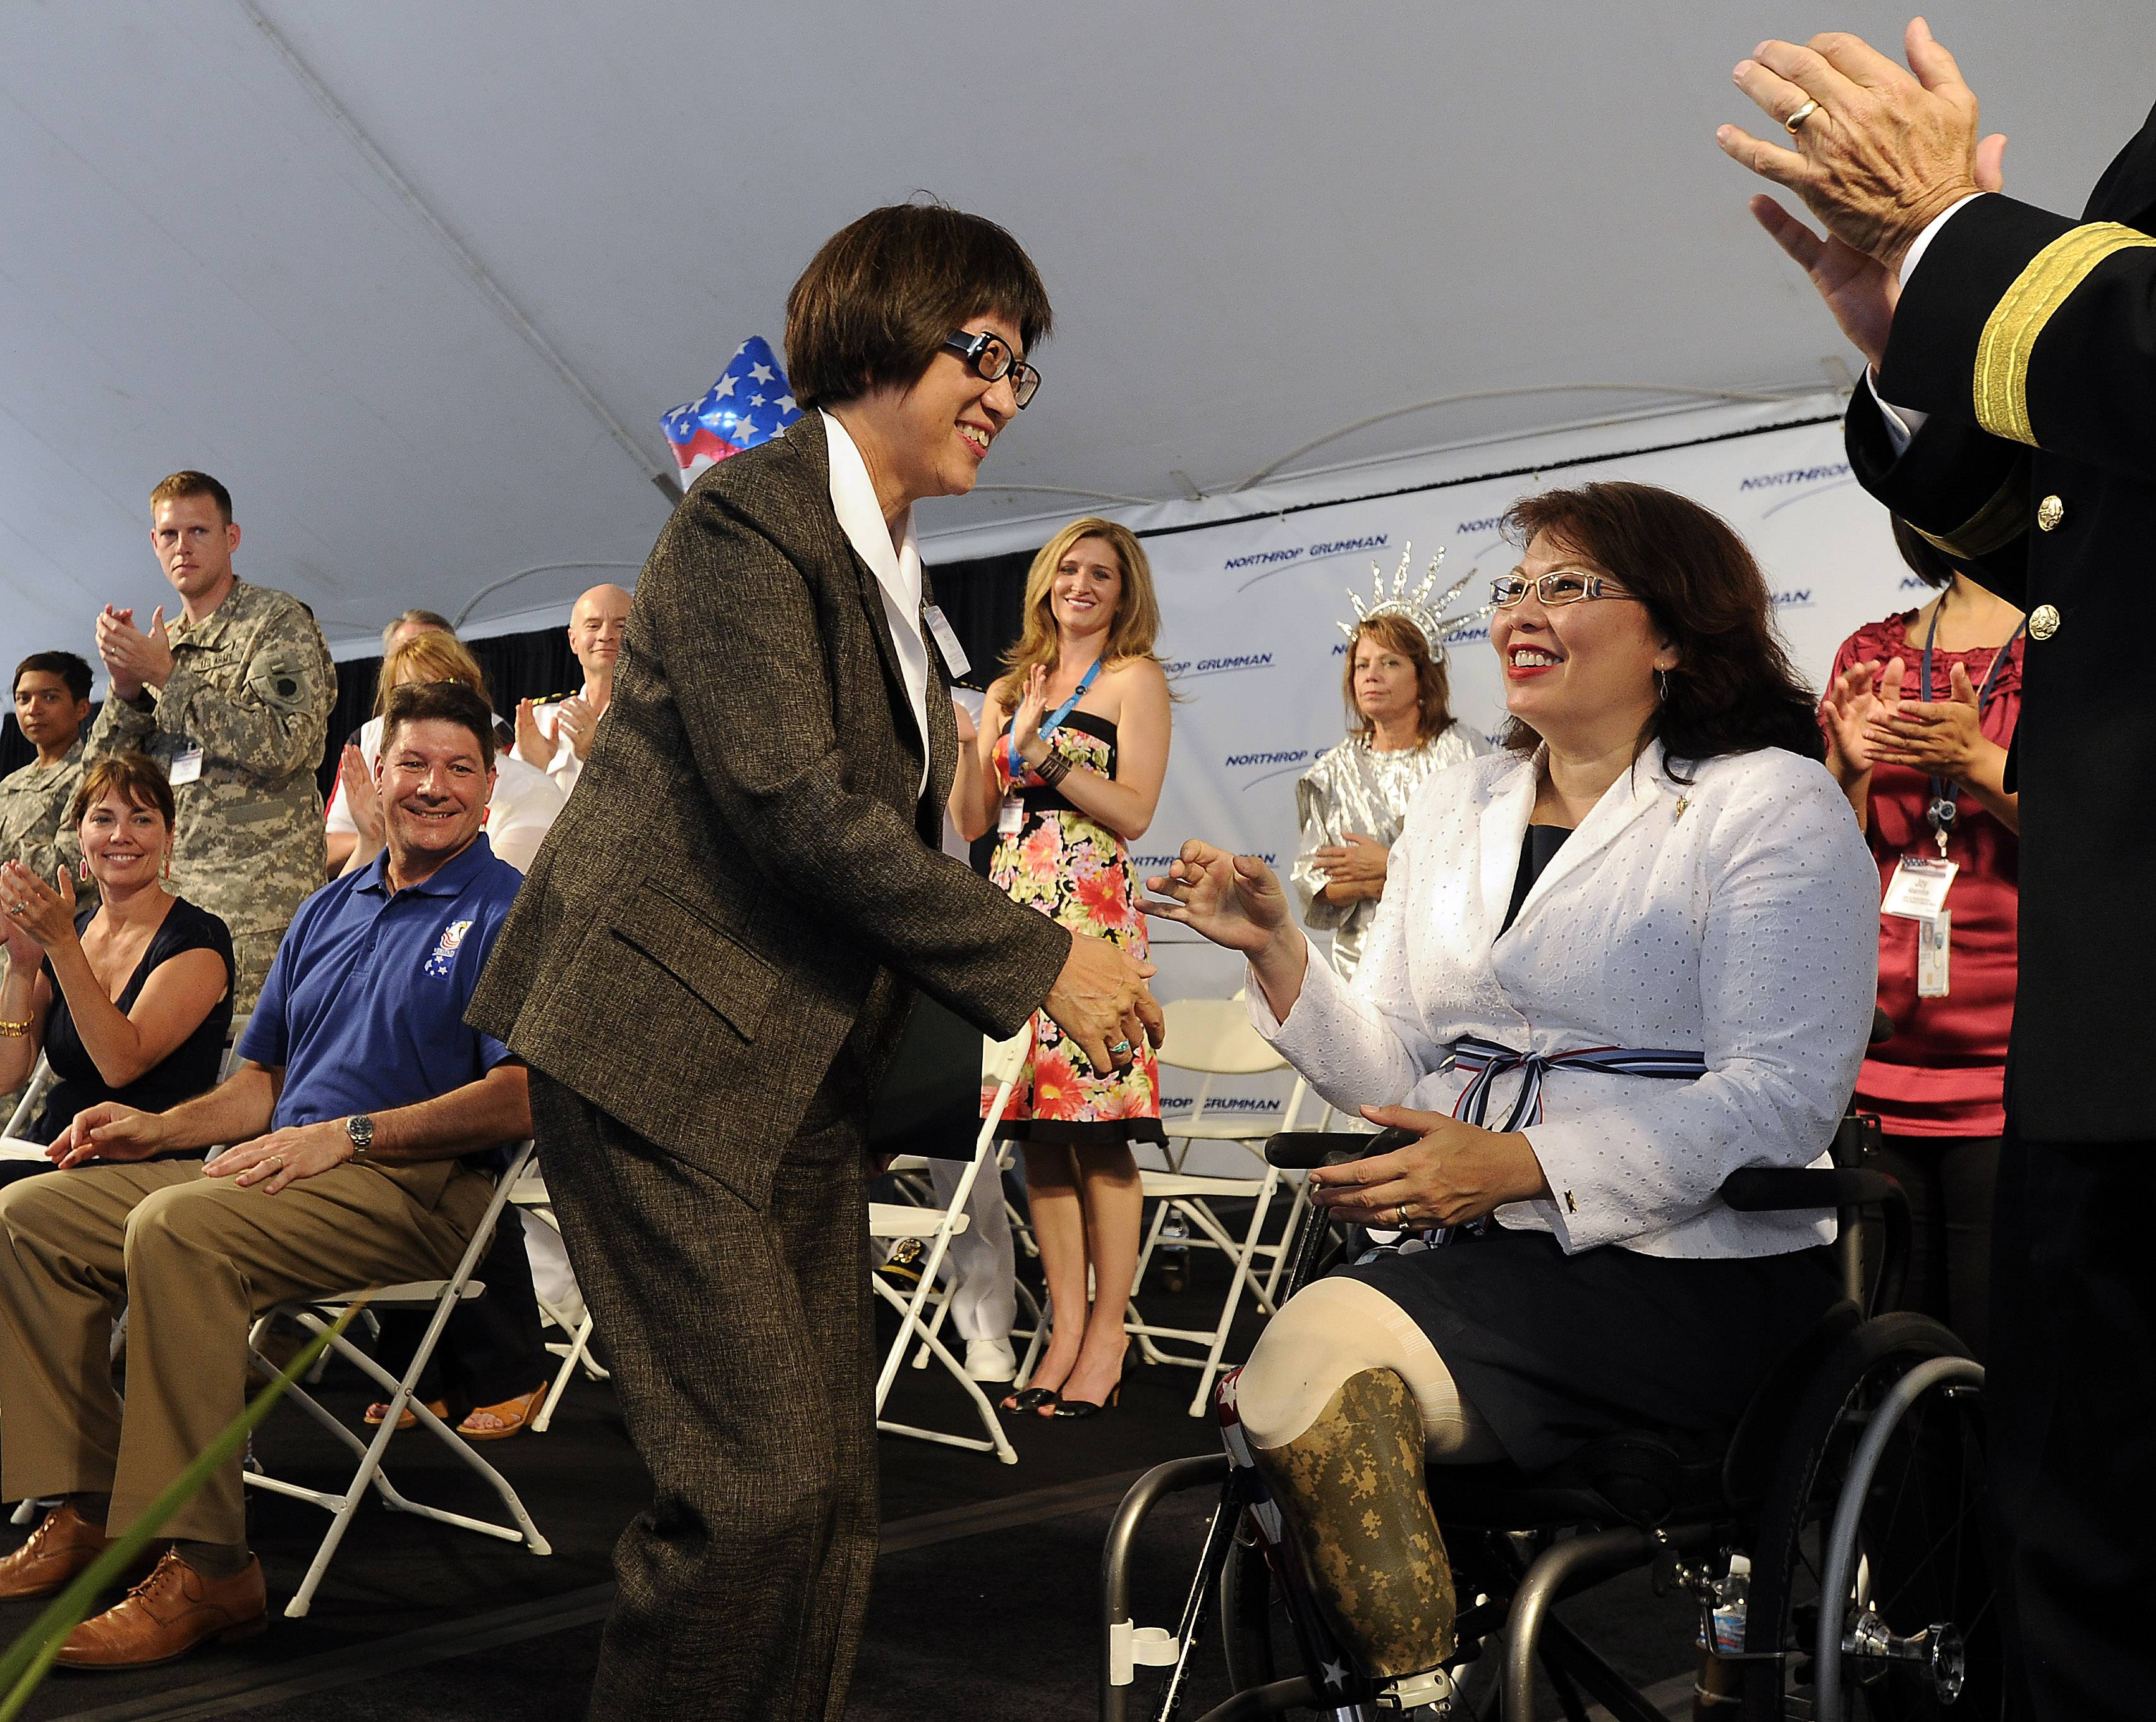 Congresswoman Tammy Duckworth, of Illinois' 8th District, is greeted by keynote speaker the Honorable Heidi Shyu, assistant secretary of the Army for acquisitions, logistics and technology at Northrop Grumman's 2014 America's Day on Tuesday in Rolling Meadows.